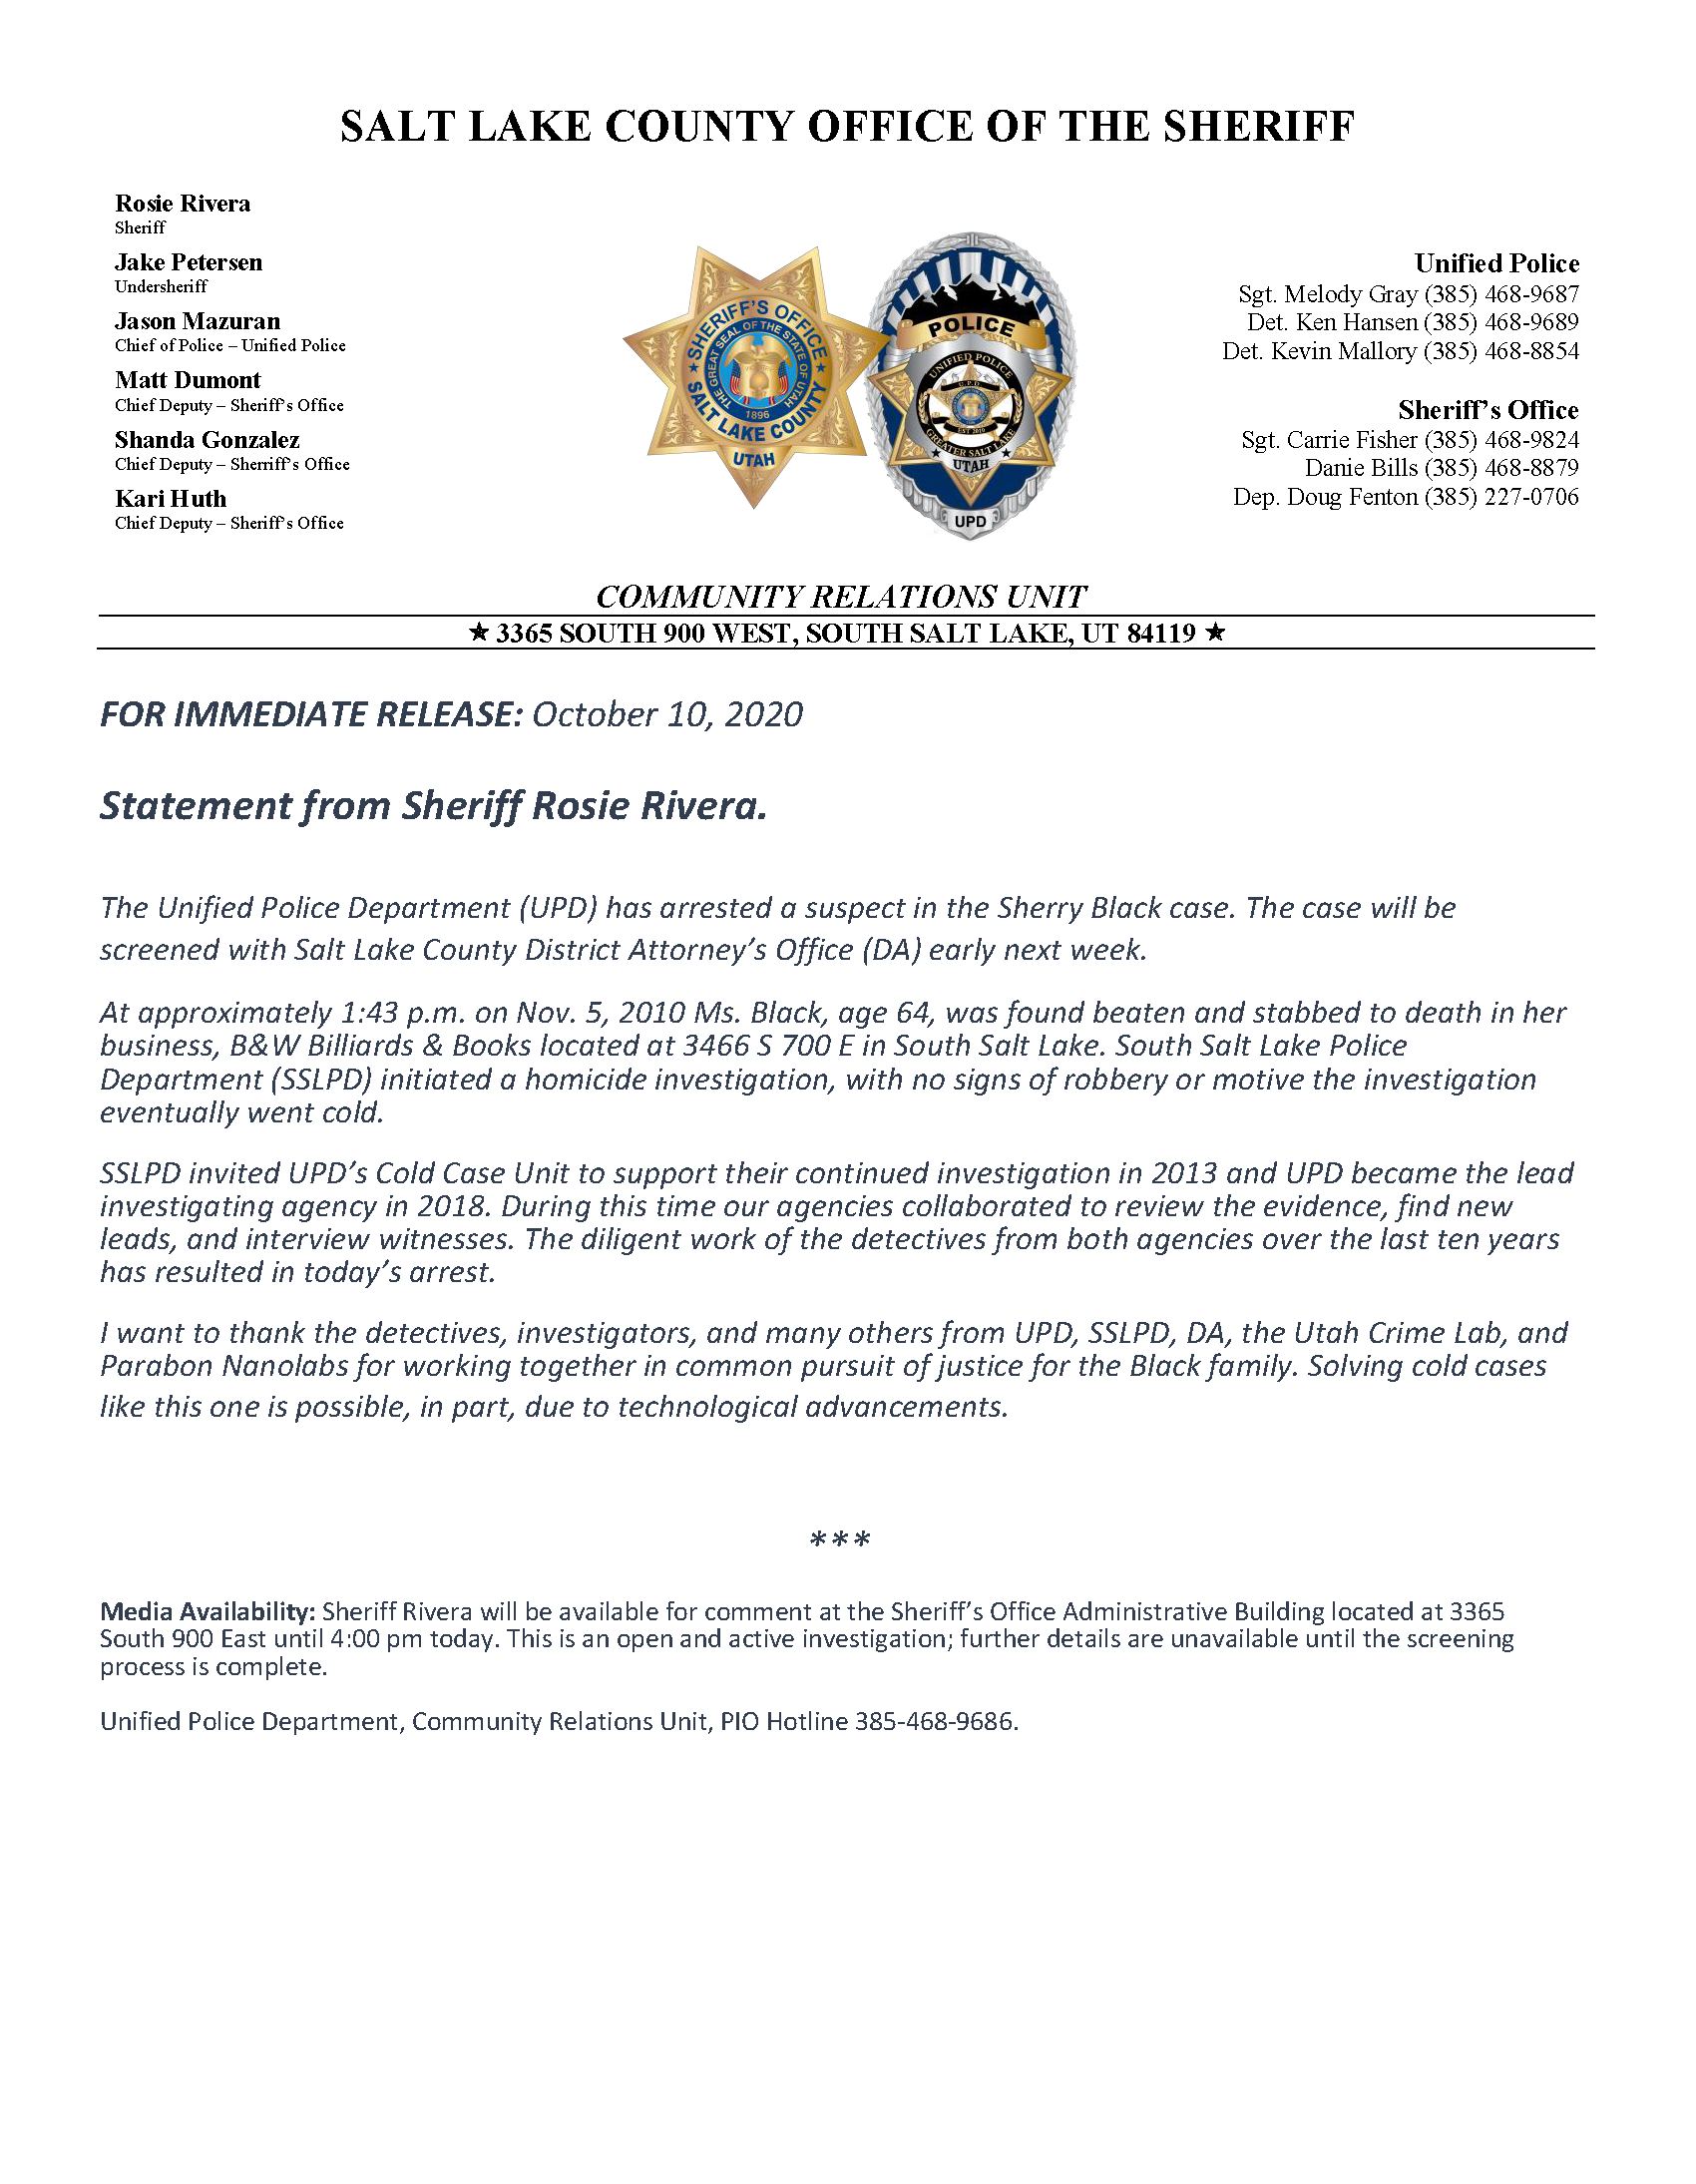 Sherry Black Homicide Arrest Press Release